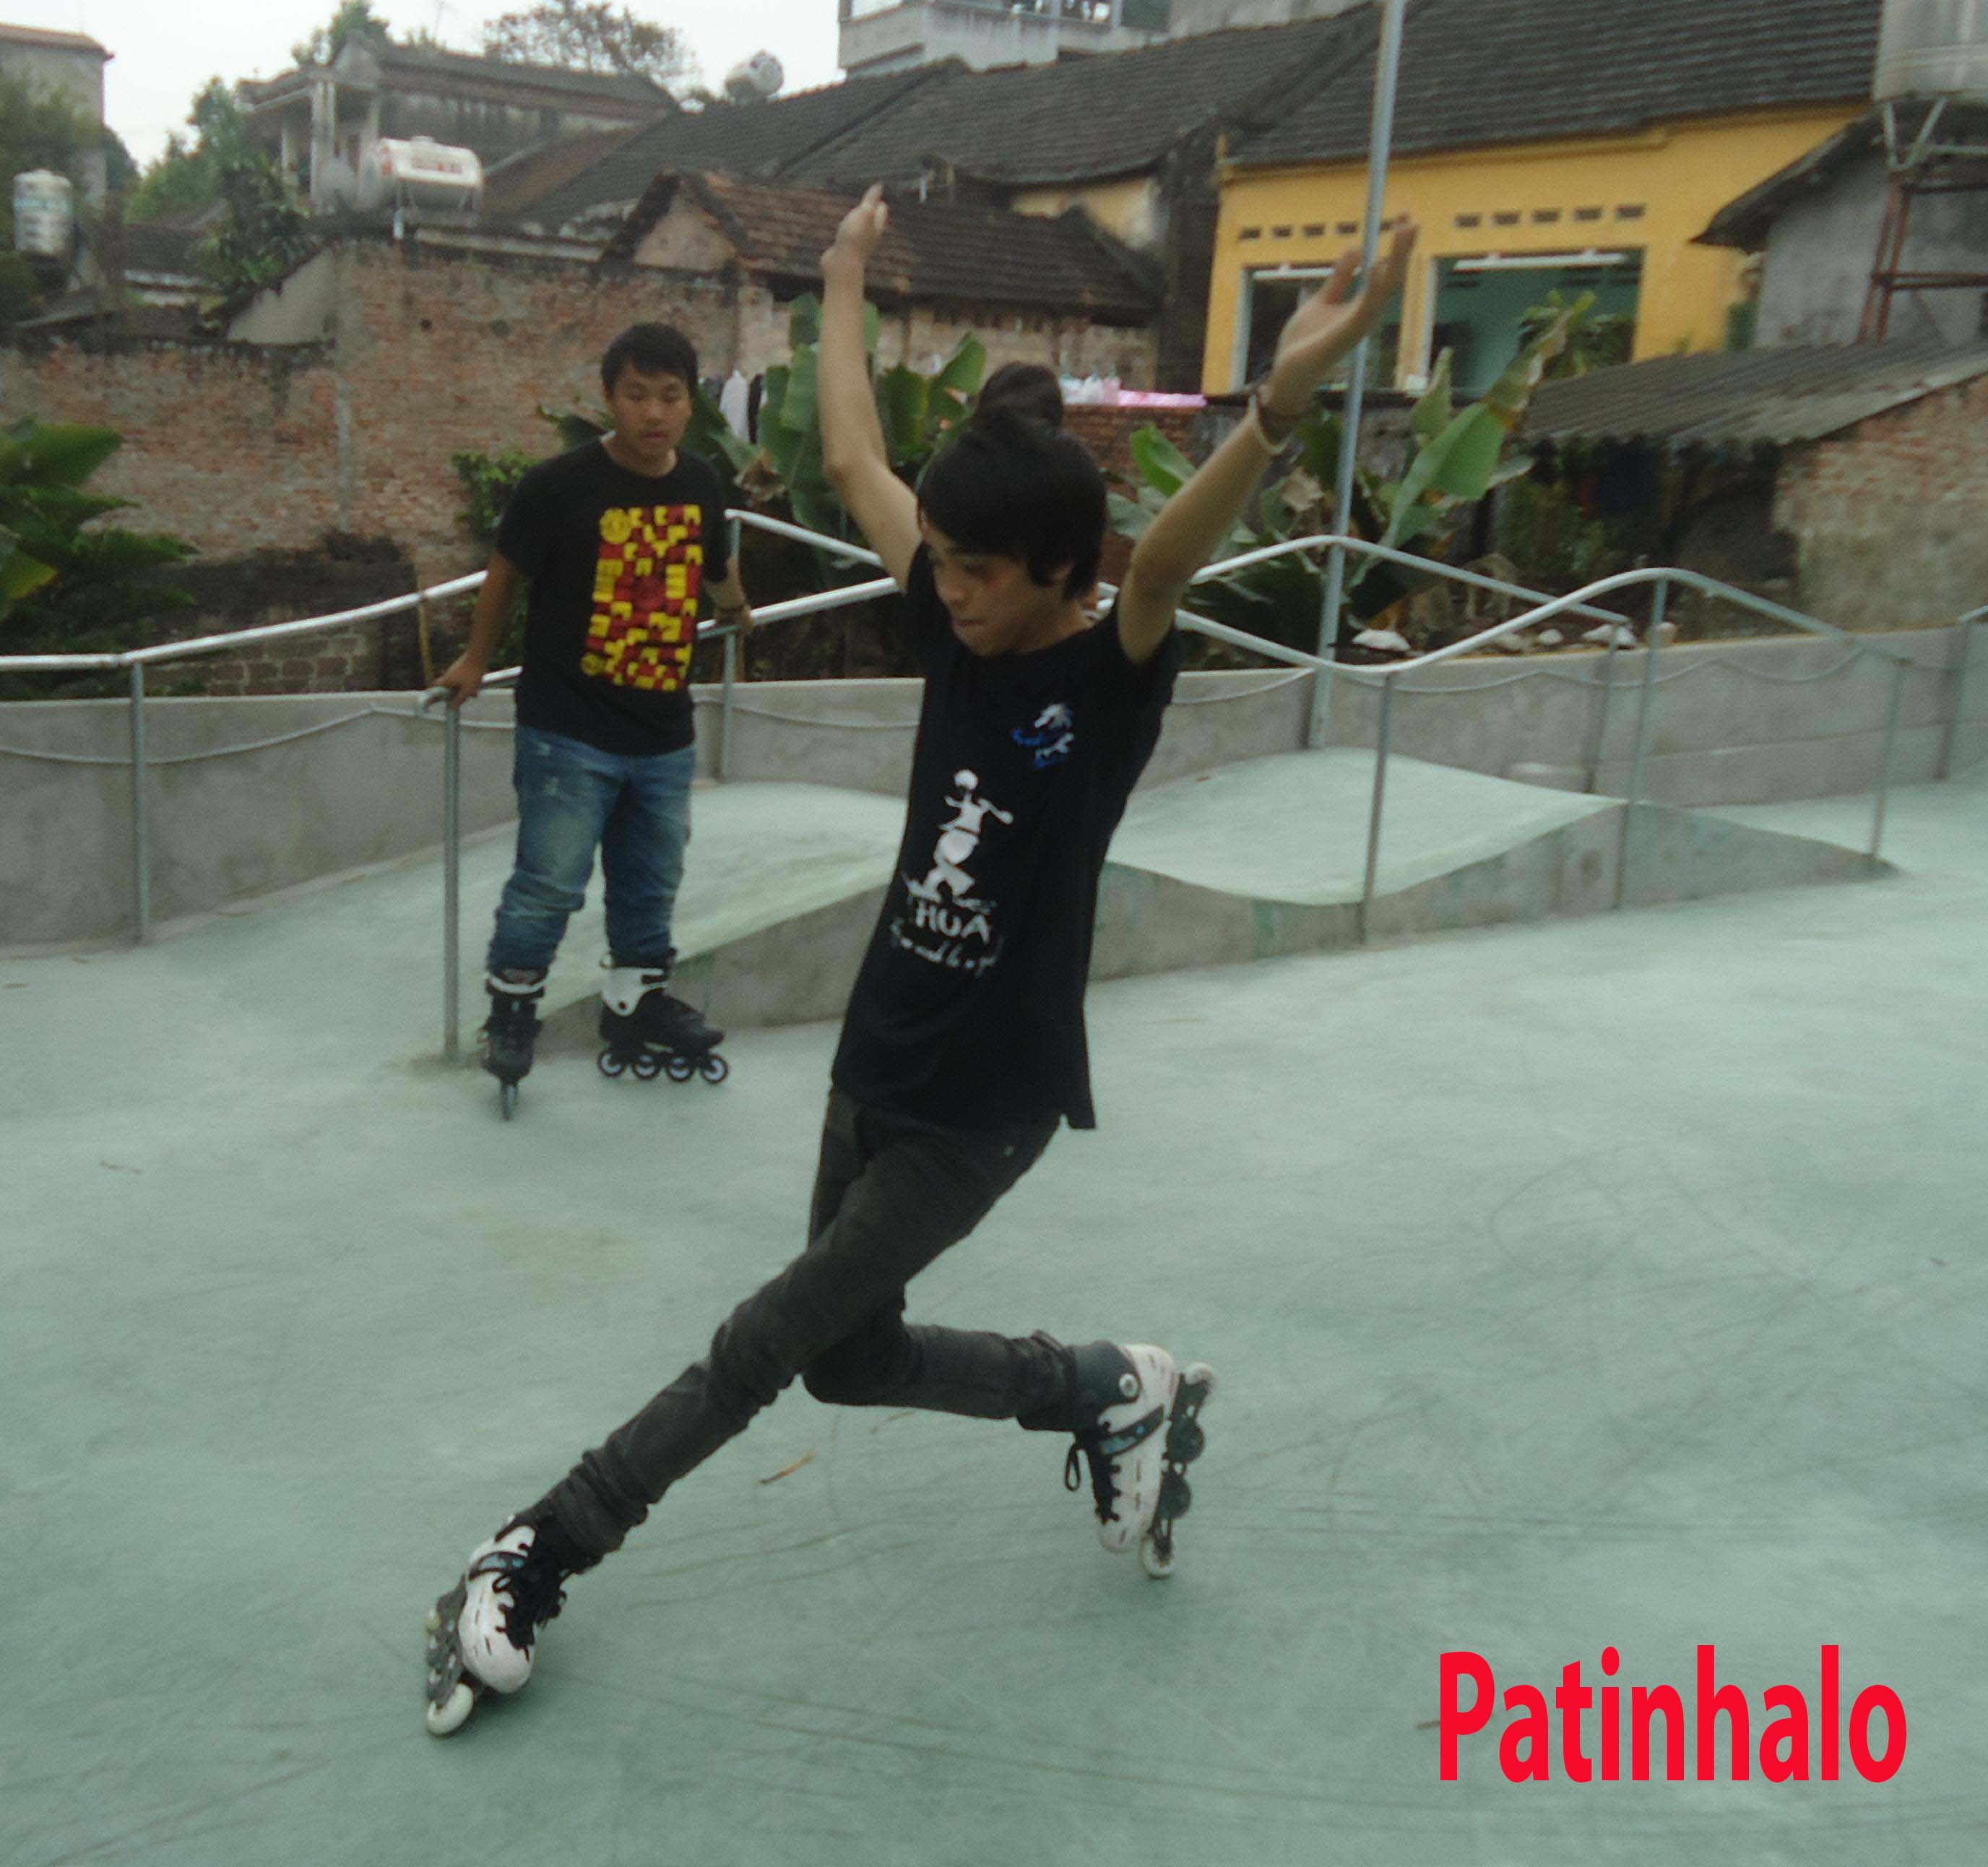 cach lam san tap patin